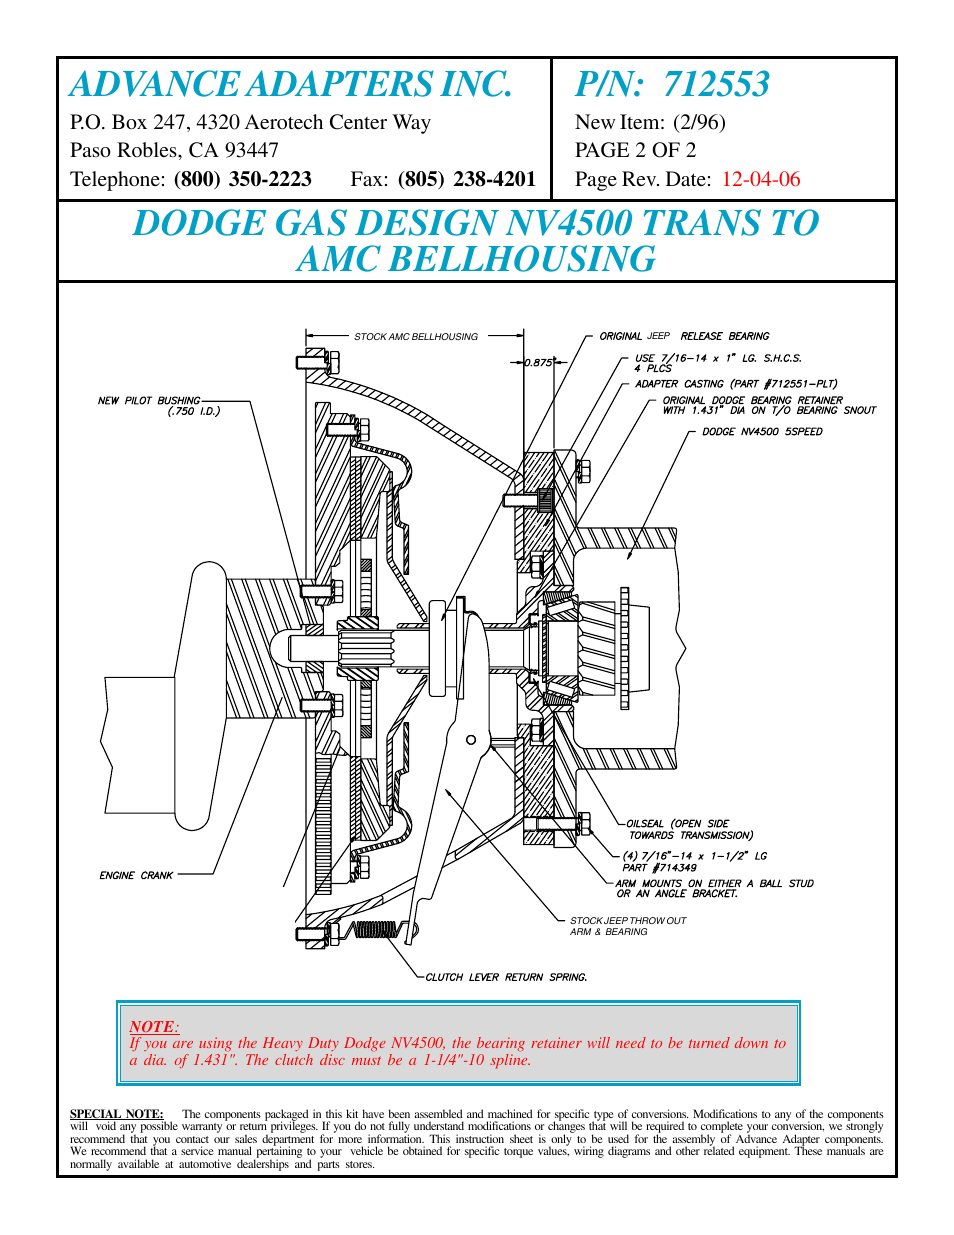 Dodge Gas Design Nv4500 Trans To Amc Bellhousing Advance Adapters Jeep 4 0l Engine Diagram 712553 User Manual Page 2